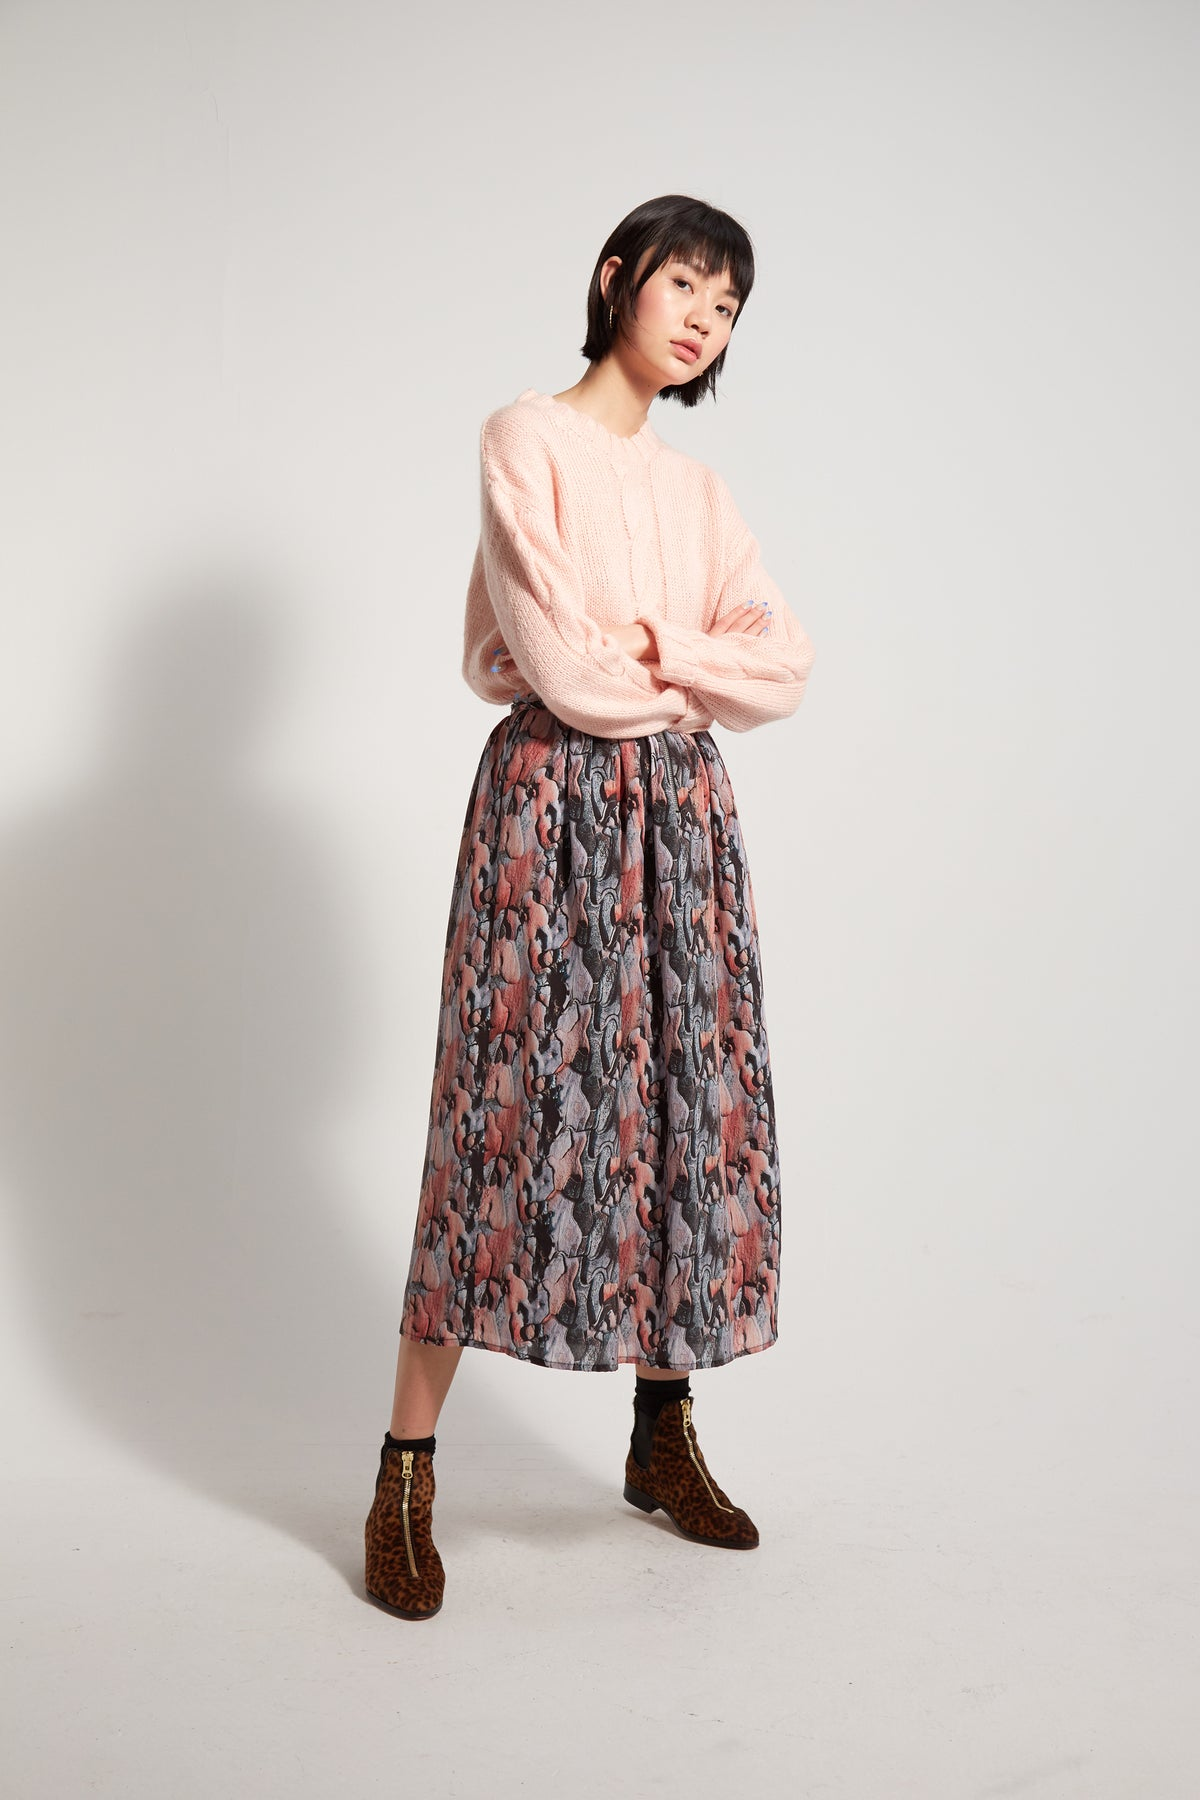 Orso skirt in Tree Bark print